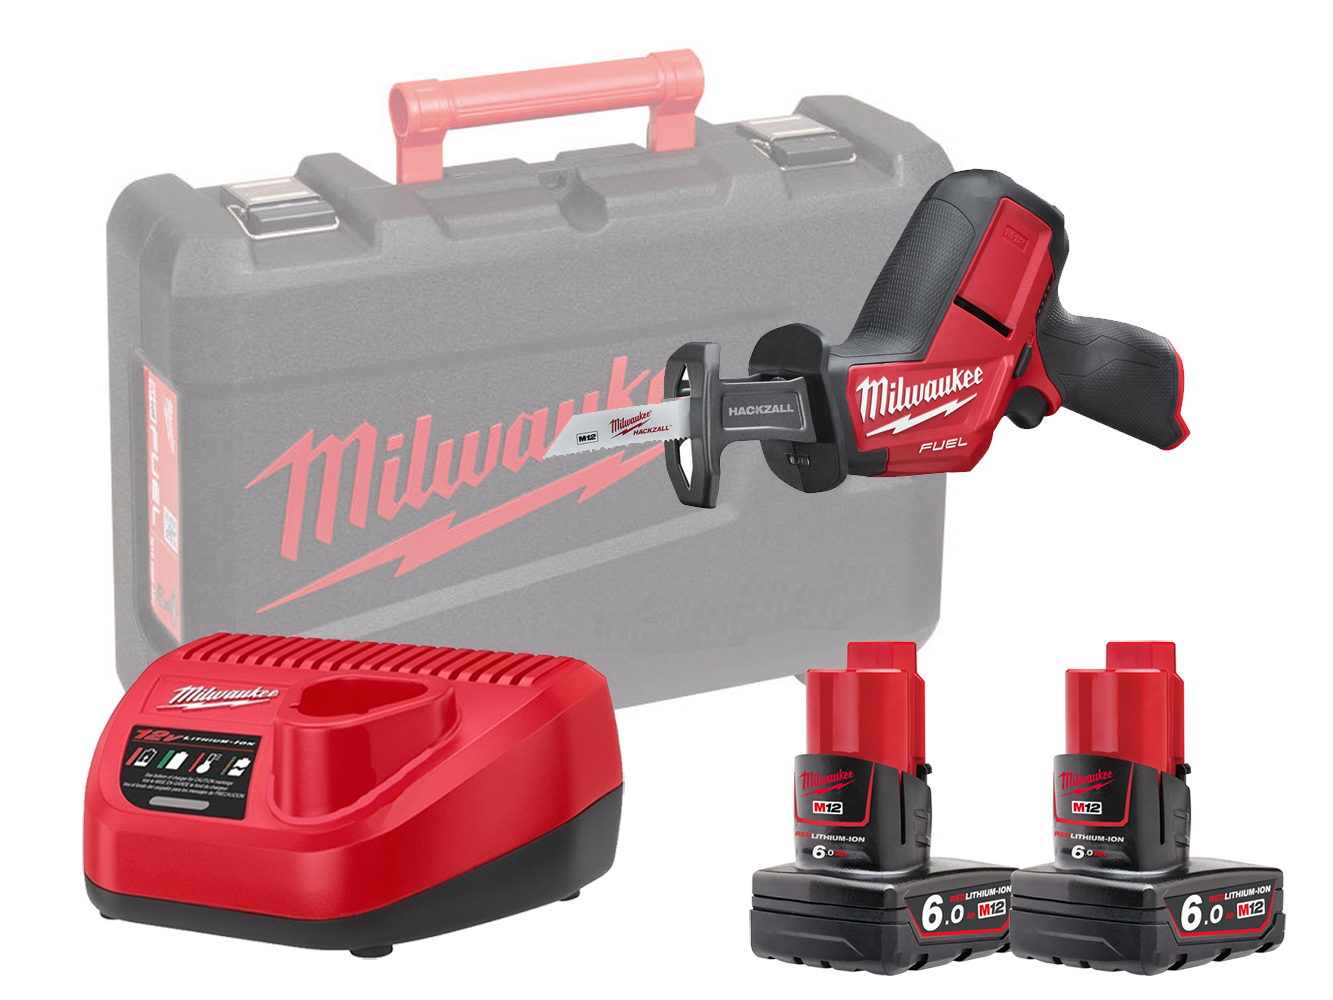 Milwaukee M12CHZ 12V Fuel Sub Compact Hackzall (Reciprocating Saw) - 6.0Ah Pack